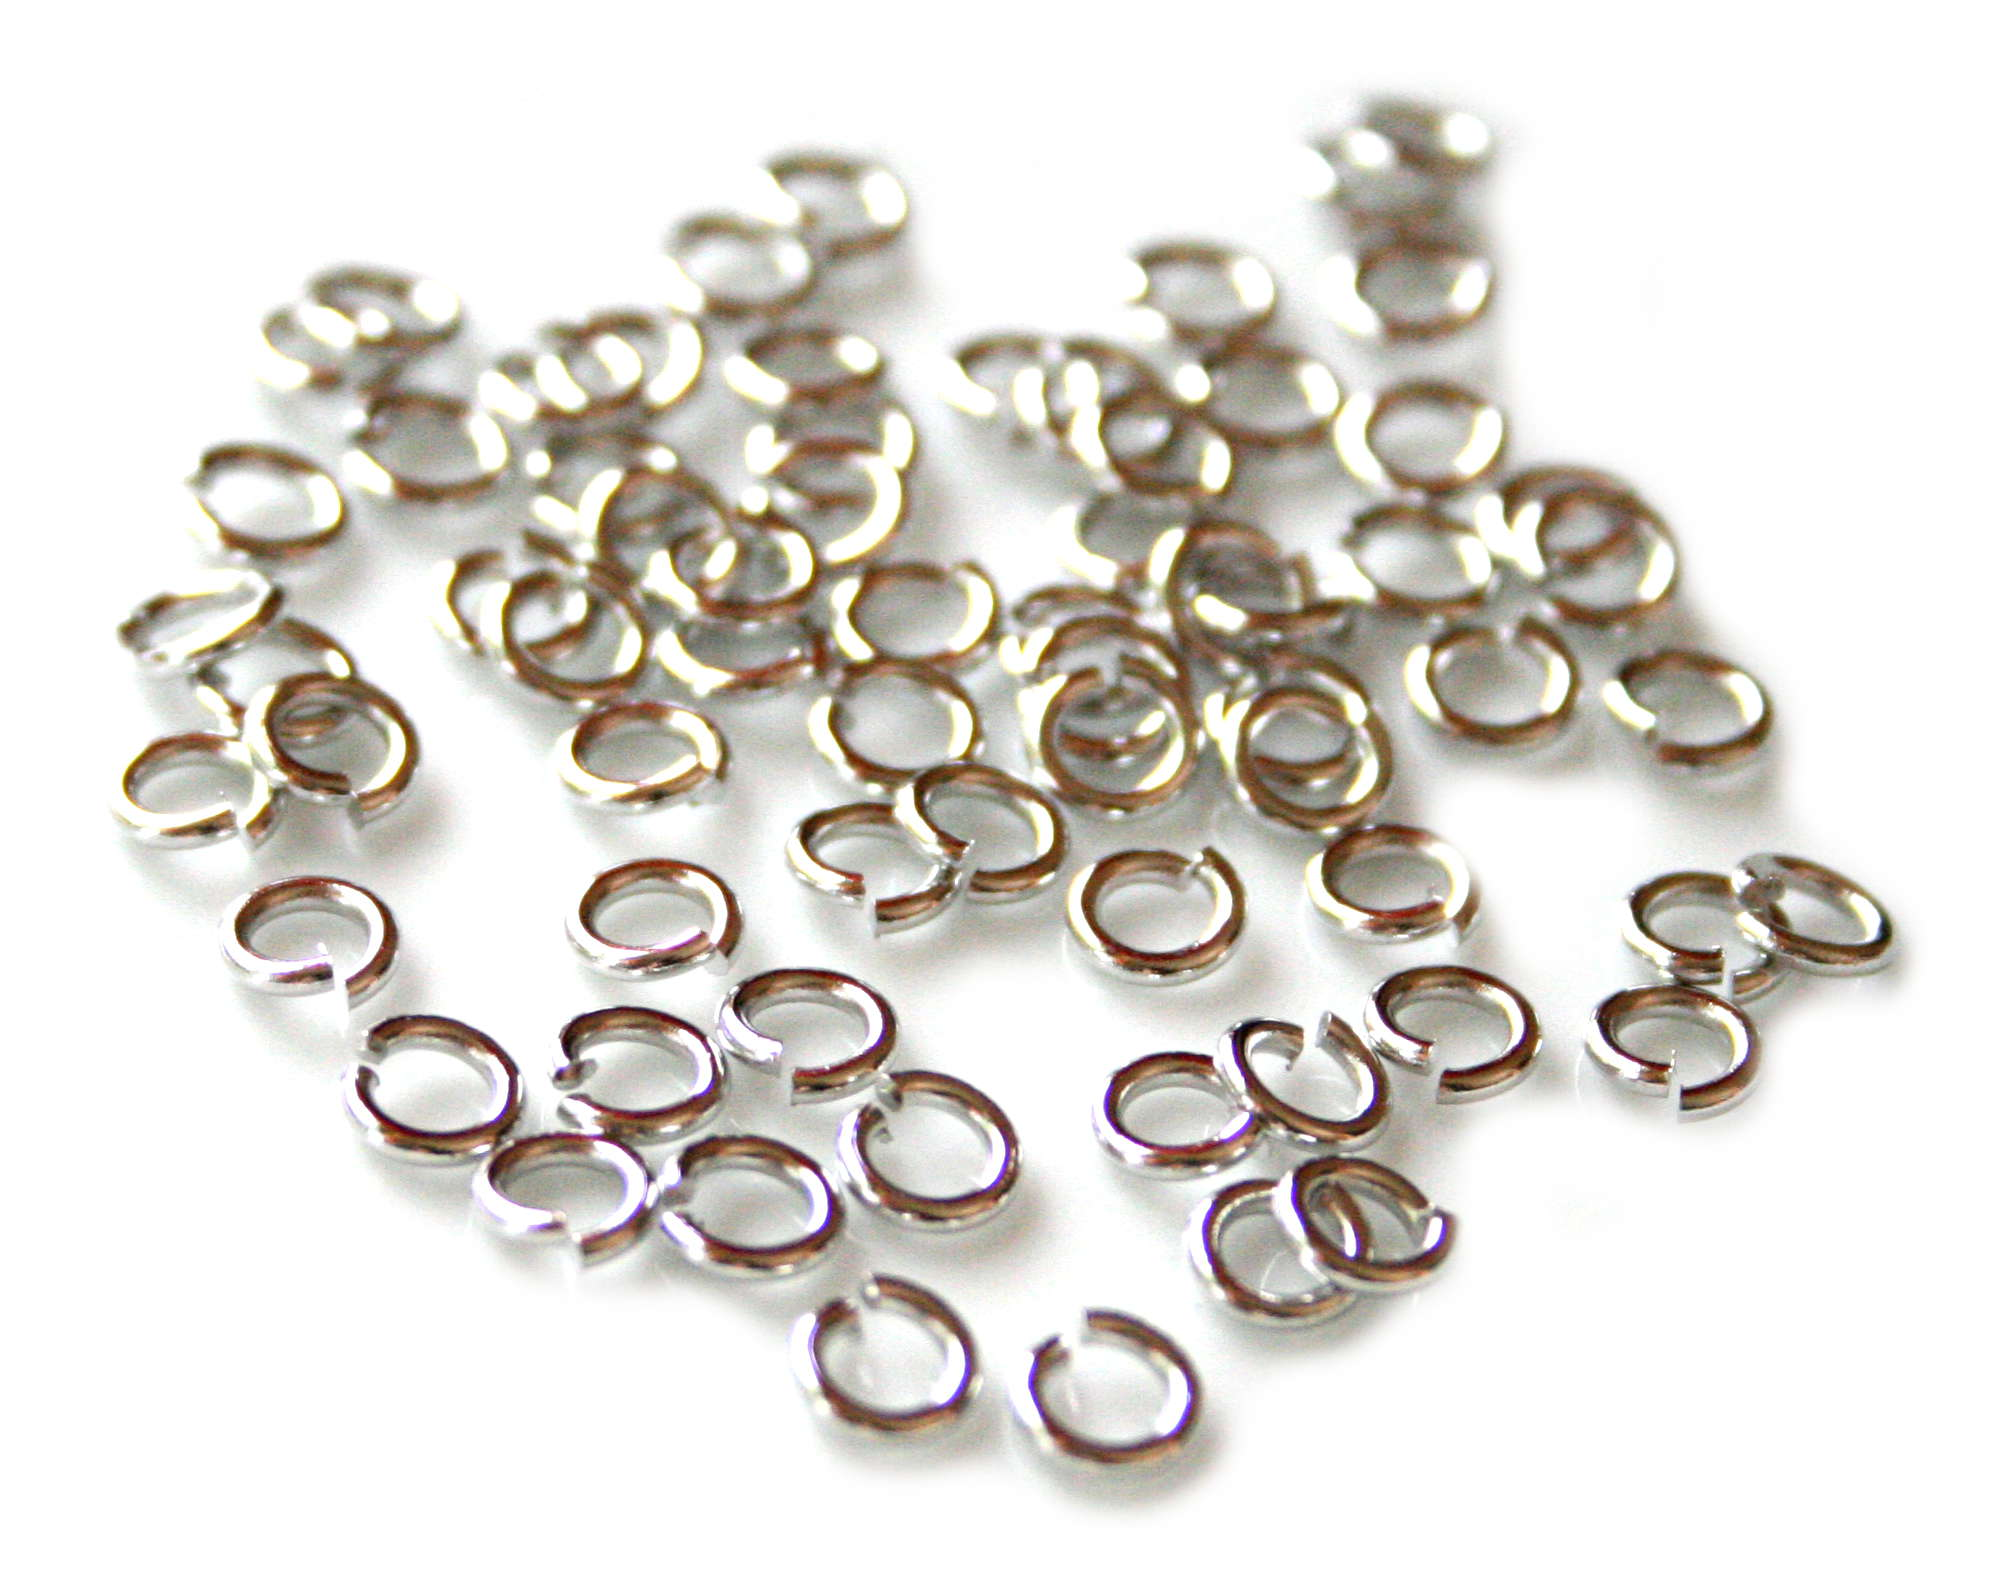 100 x Nickel free jumpring, 0.8x5mm